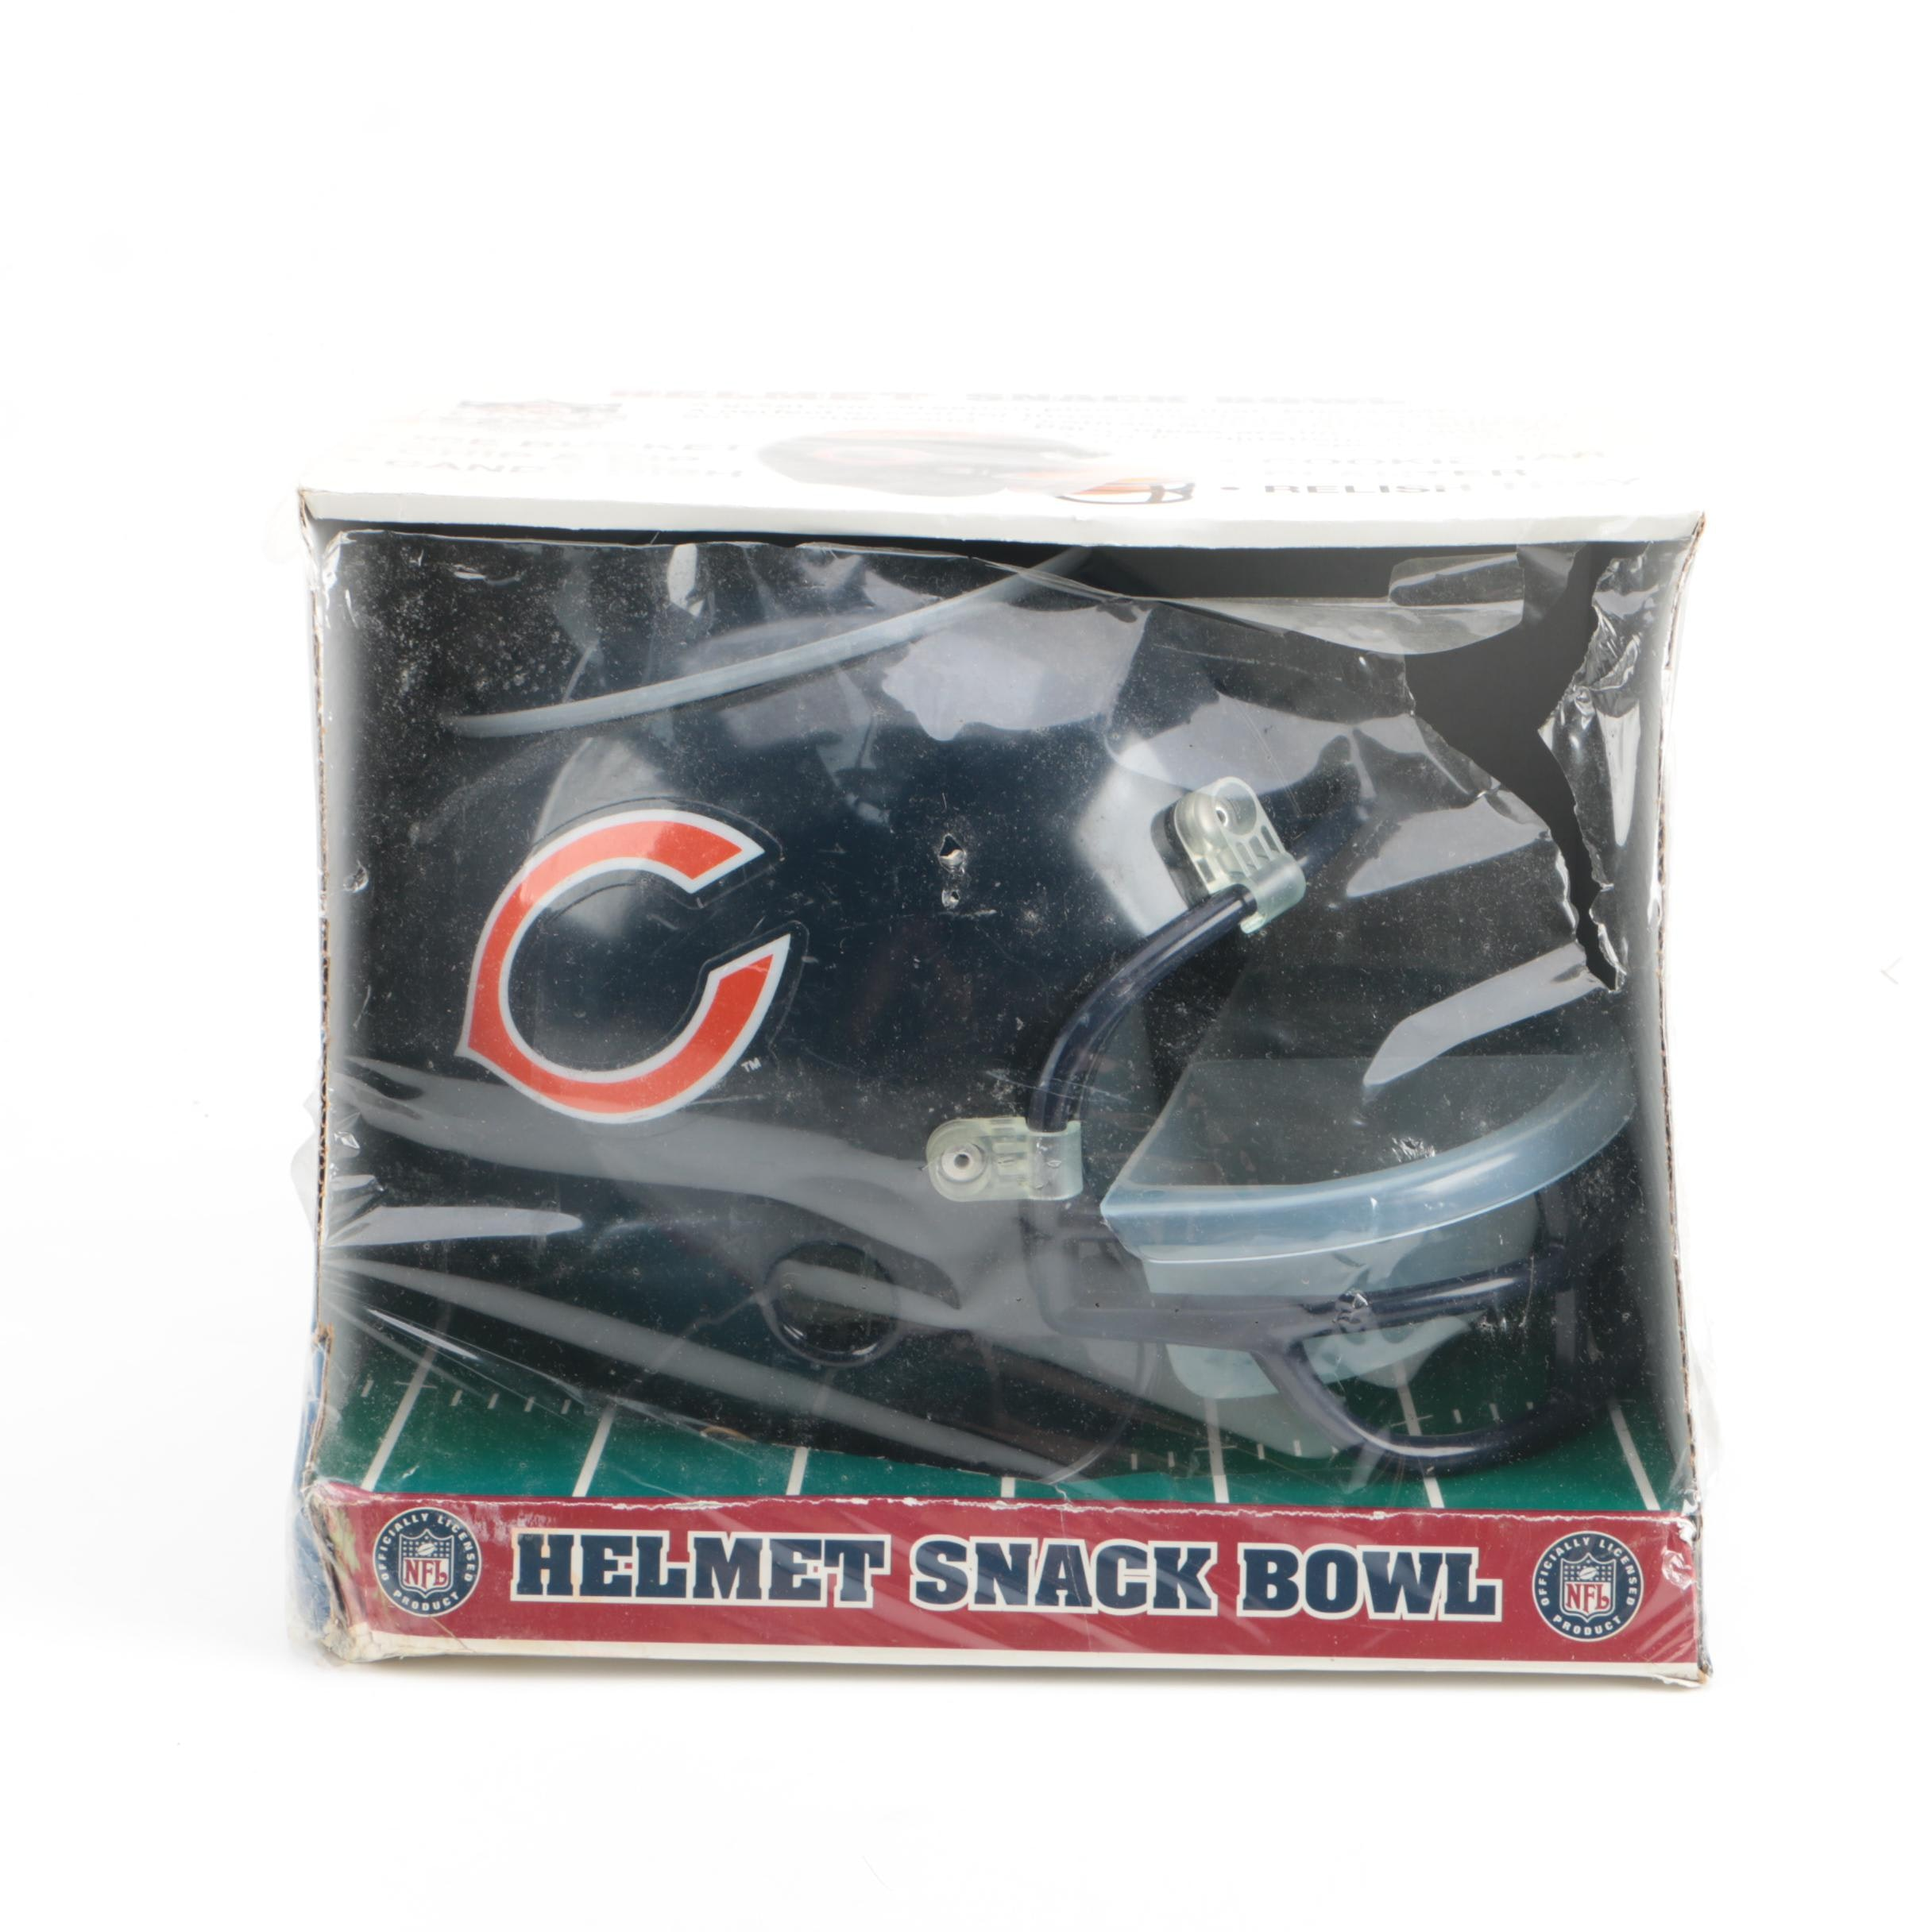 PK Products Chicago Bears Football Helmet Snack Bowl